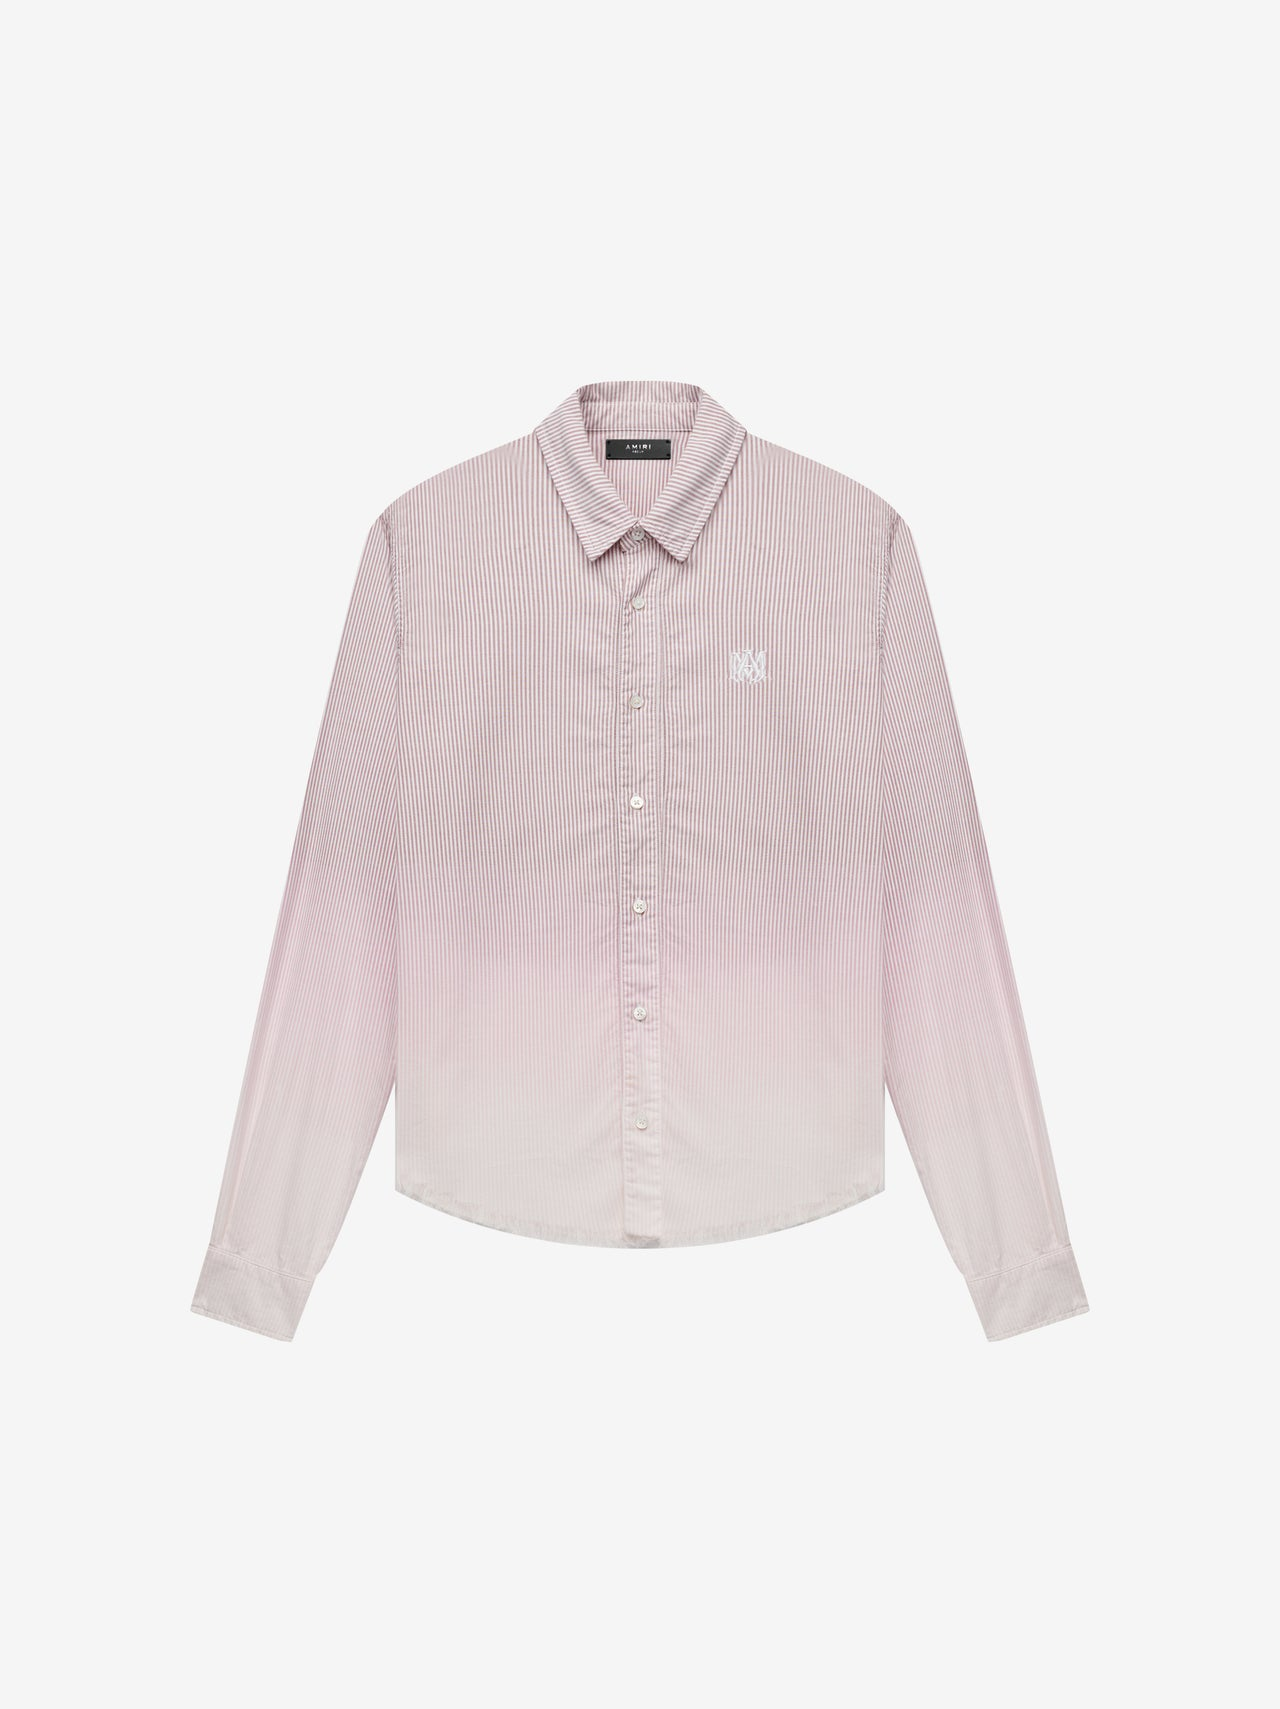 BLEACH OXFORD SHIRT - Red